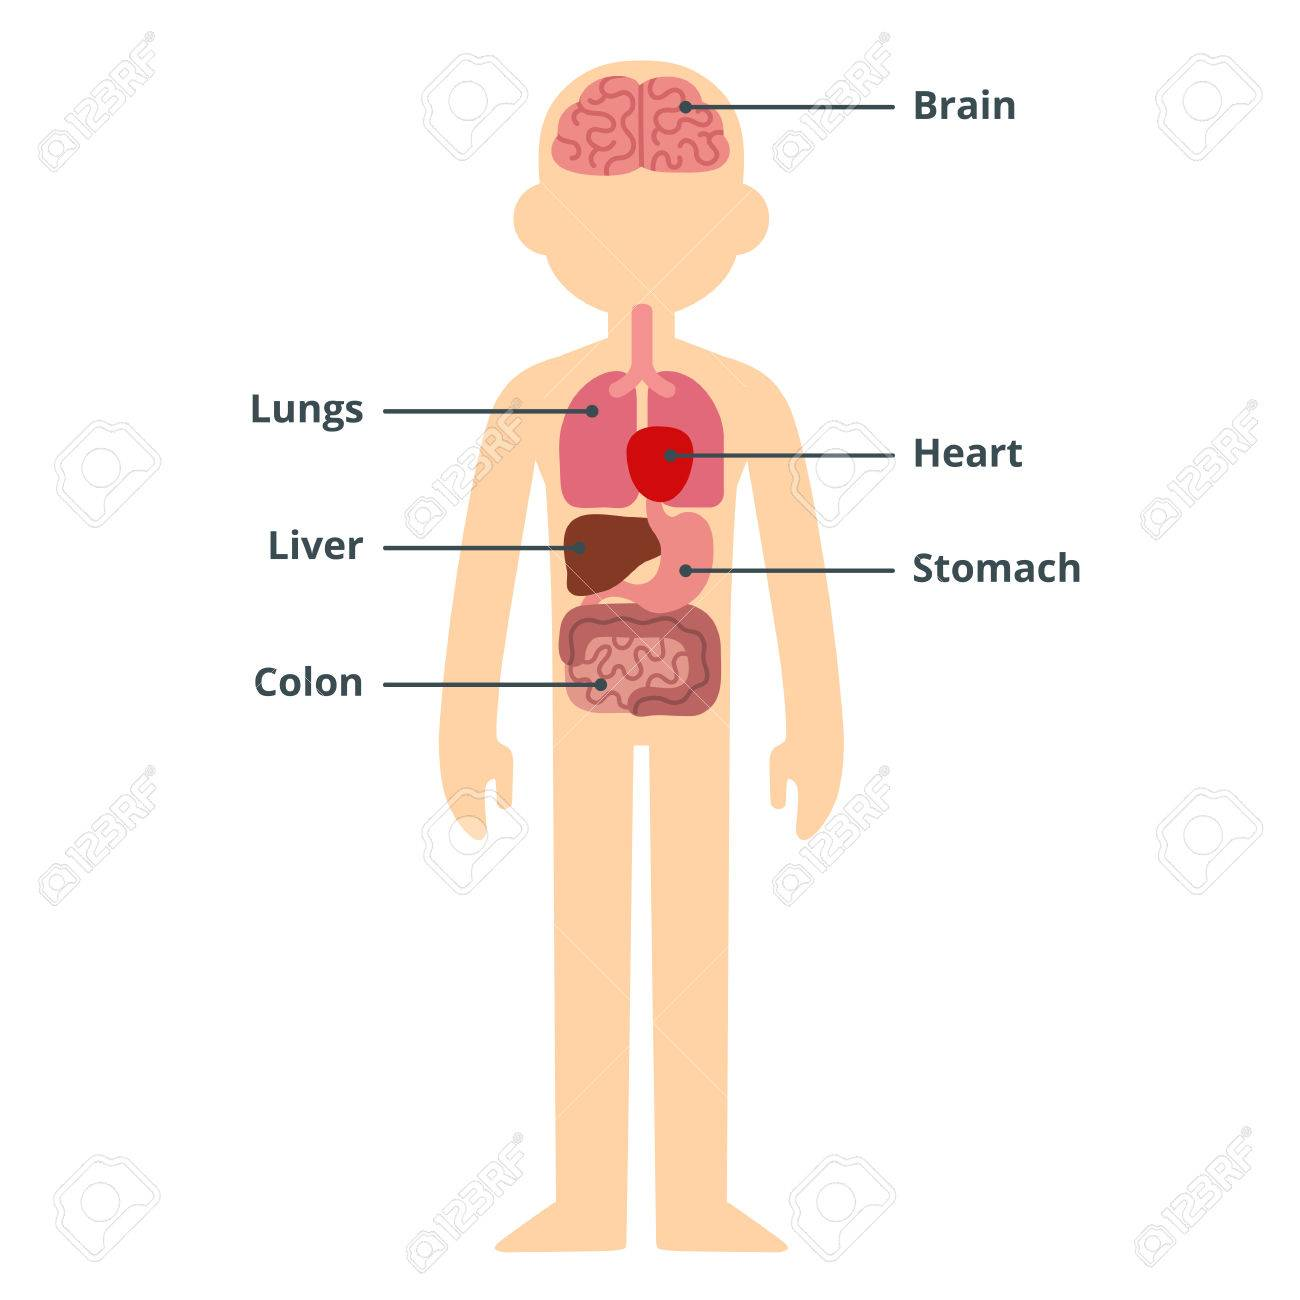 Human Internal Organ Infographic Chart With Text Captions. Royalty ...